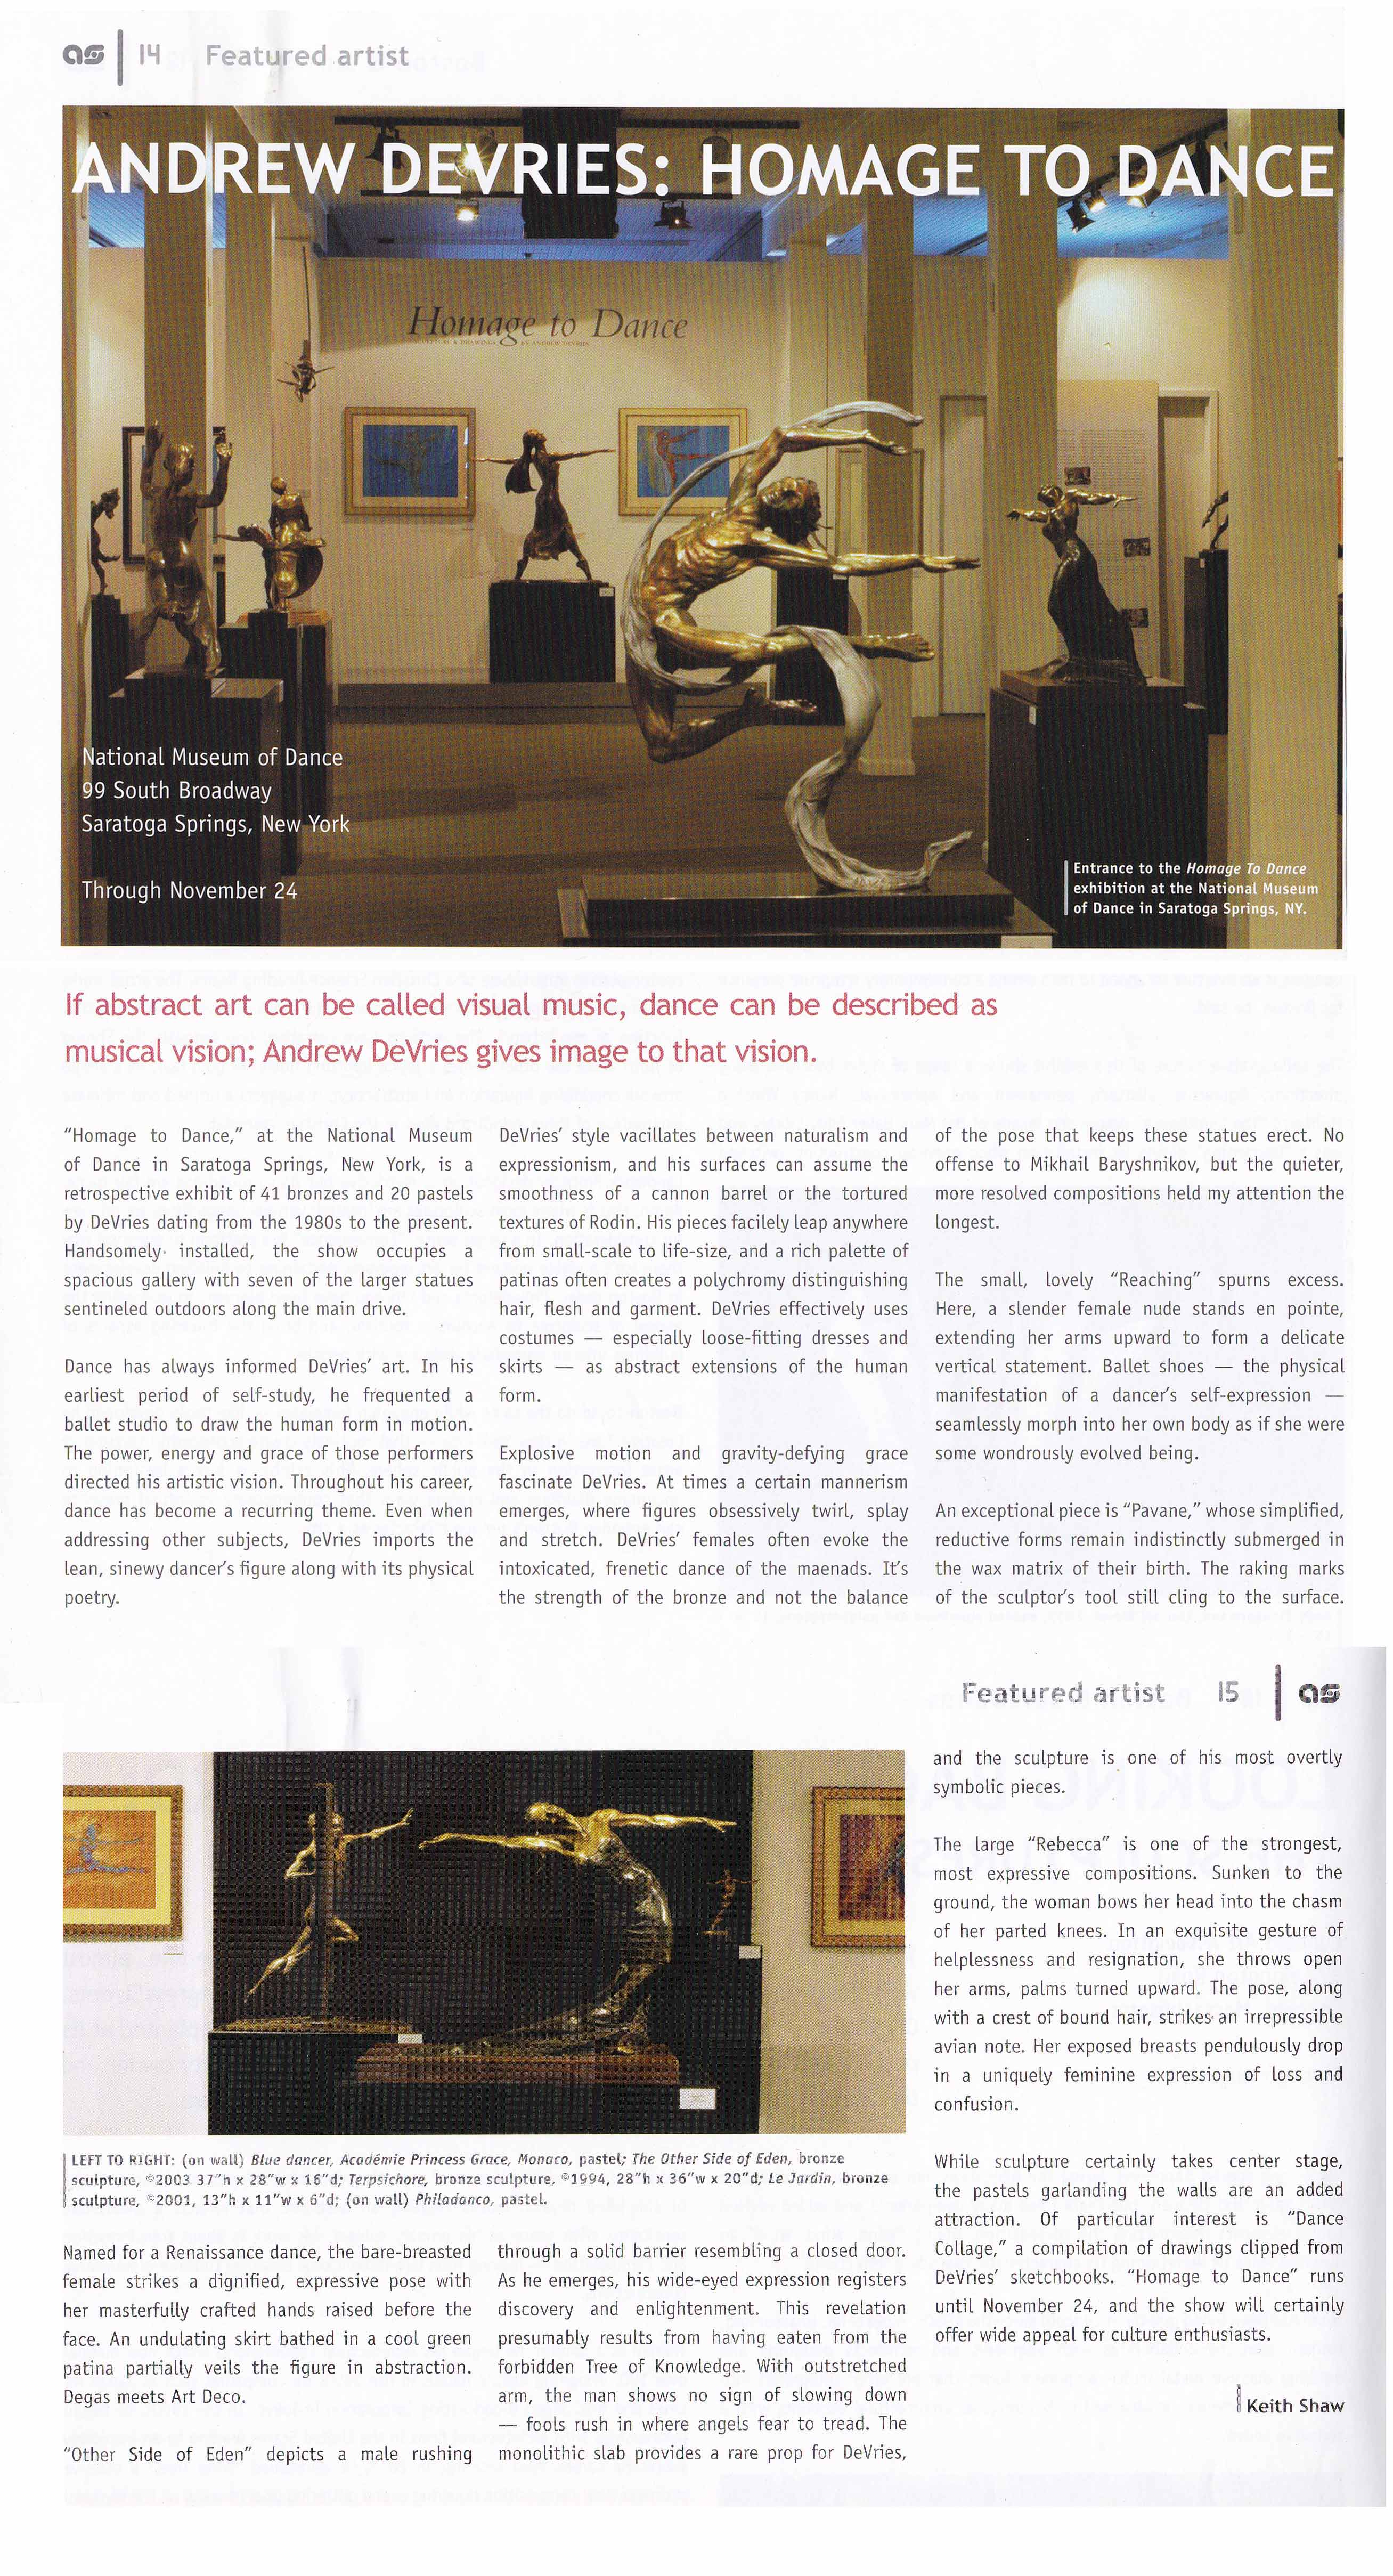 artscope magazine review of Homage to Dance exhibition 2013 by Kieth Shaw